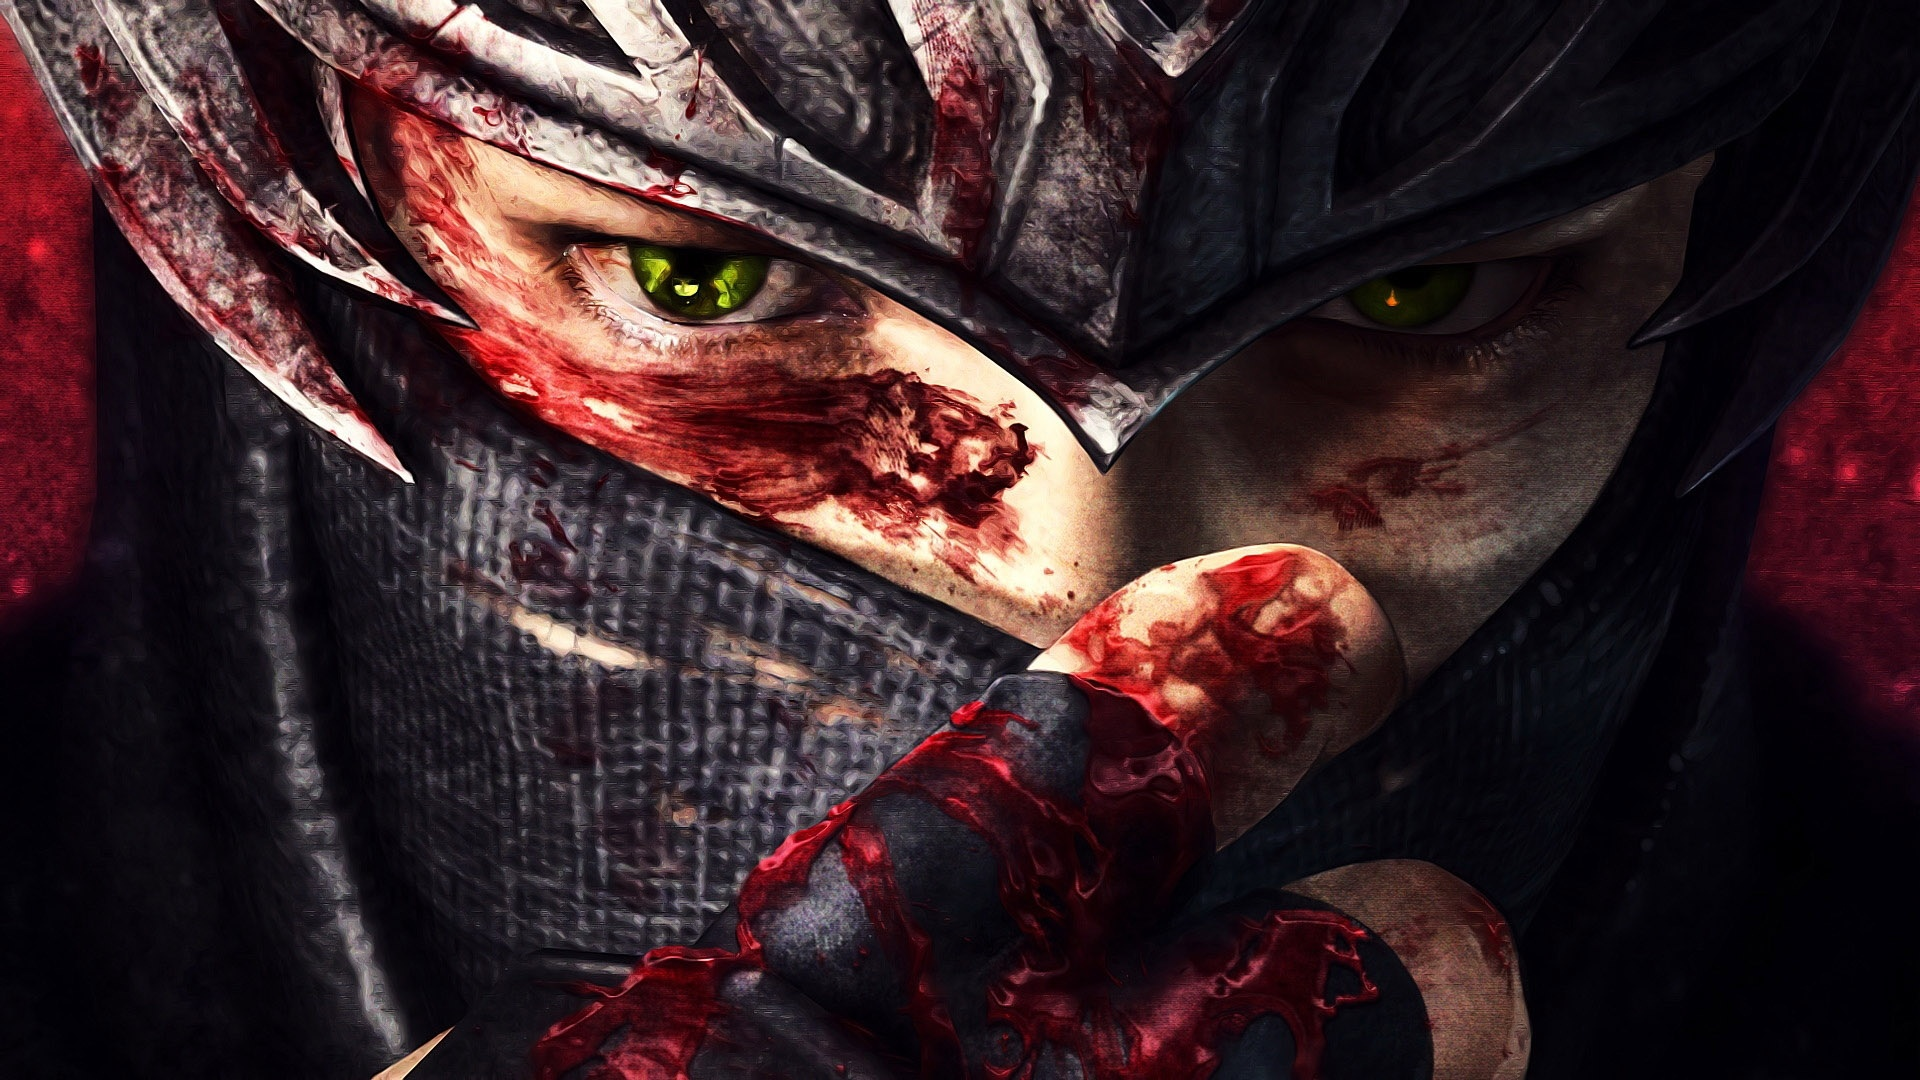 Abyss-Everything-Ninja-Gaiden-Videojuego-Ninja-Gaiden-wallpaper-wp3801710